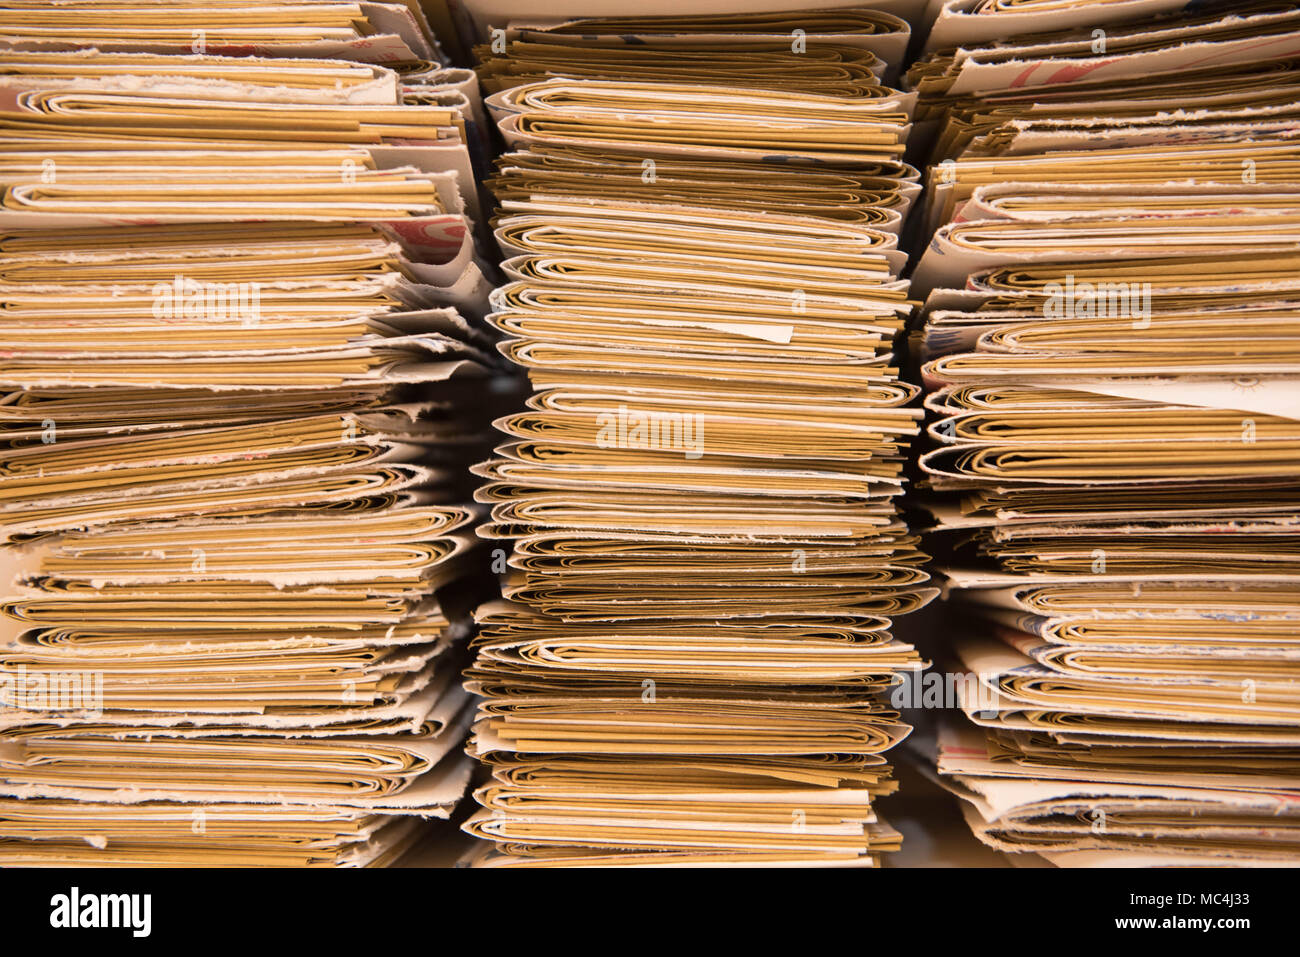 Carmela Dacchille handles an interesting project called Edizioni Precarie, Letter of Food Paper, recycles in various ways what's the paper used to wra Stock Photo